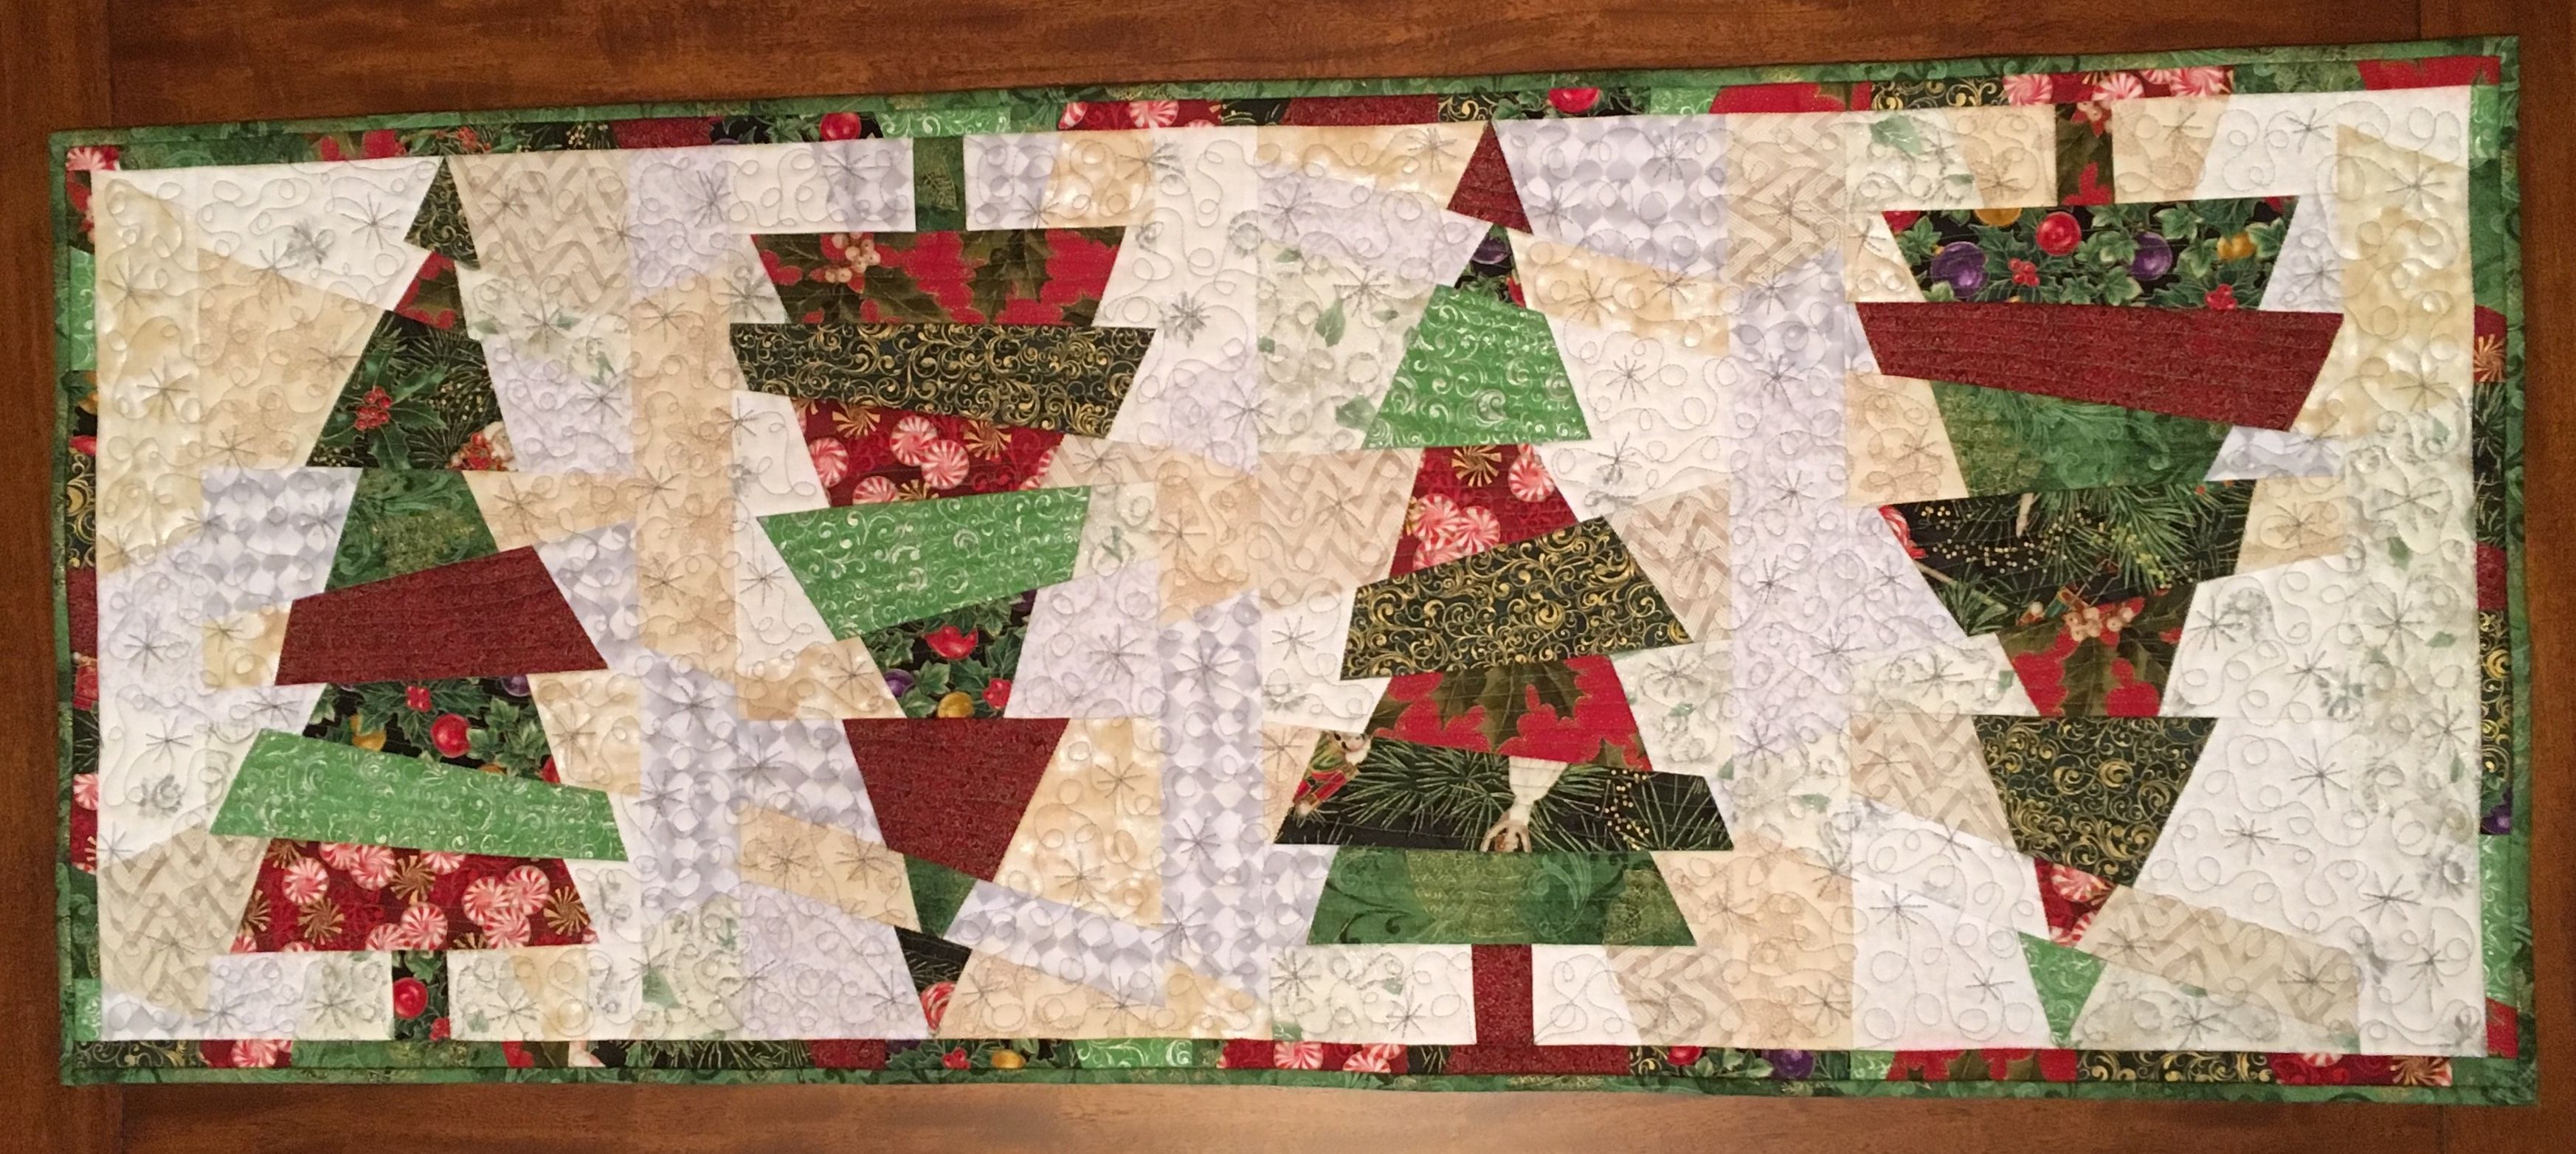 Image result for karla alexander crazy christmas trees